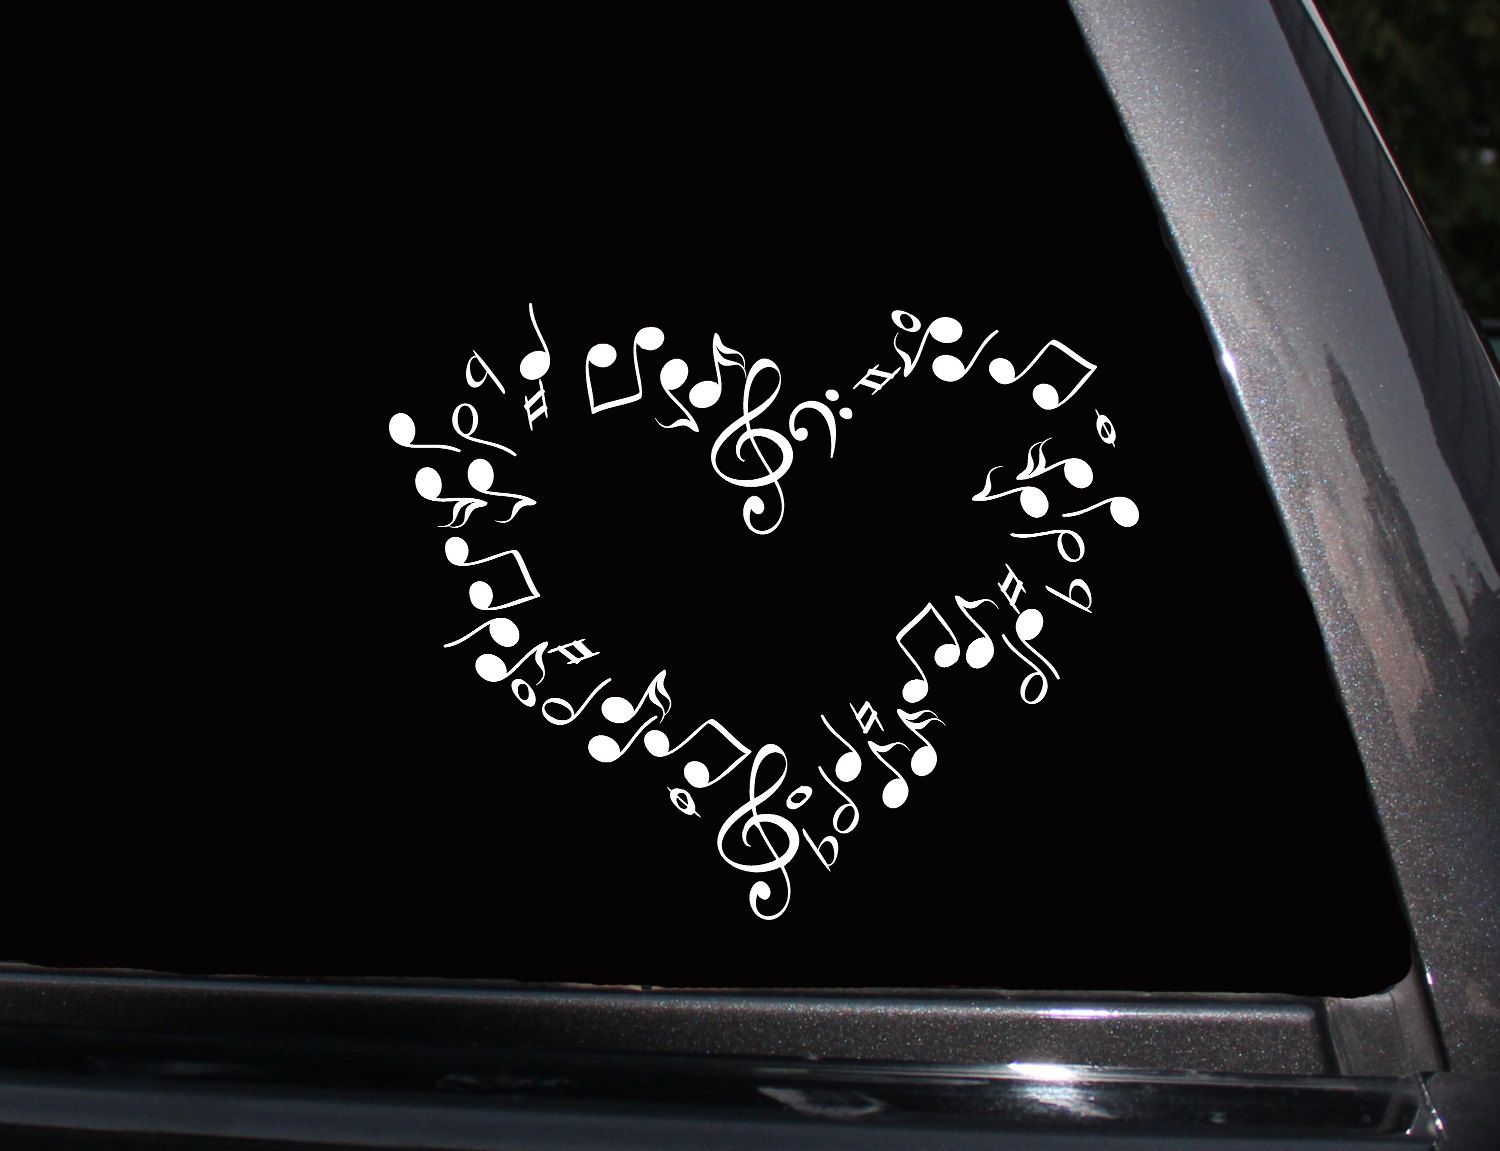 I Love Music Music Note Heart Vinyl Decal Phone Decal Laptop Decal Wall Decal Car Decal Sticker Cute Car Decals Unique Vinyl Decals Music Wall Decal [ 1151 x 1500 Pixel ]